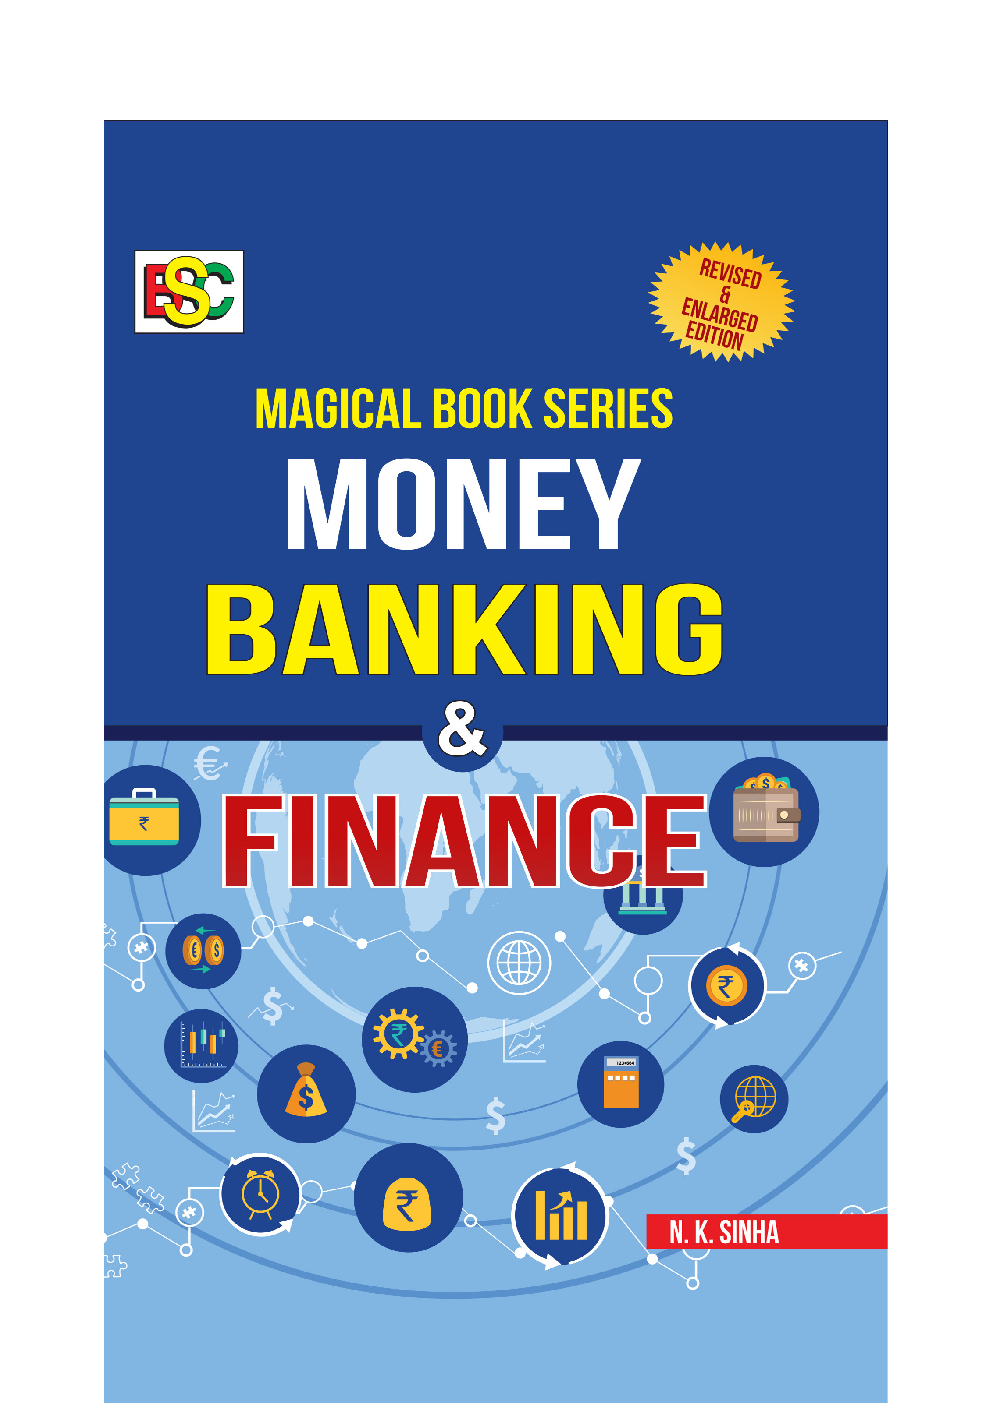 Magical Book Series: Money Banking & Finance - Page 1